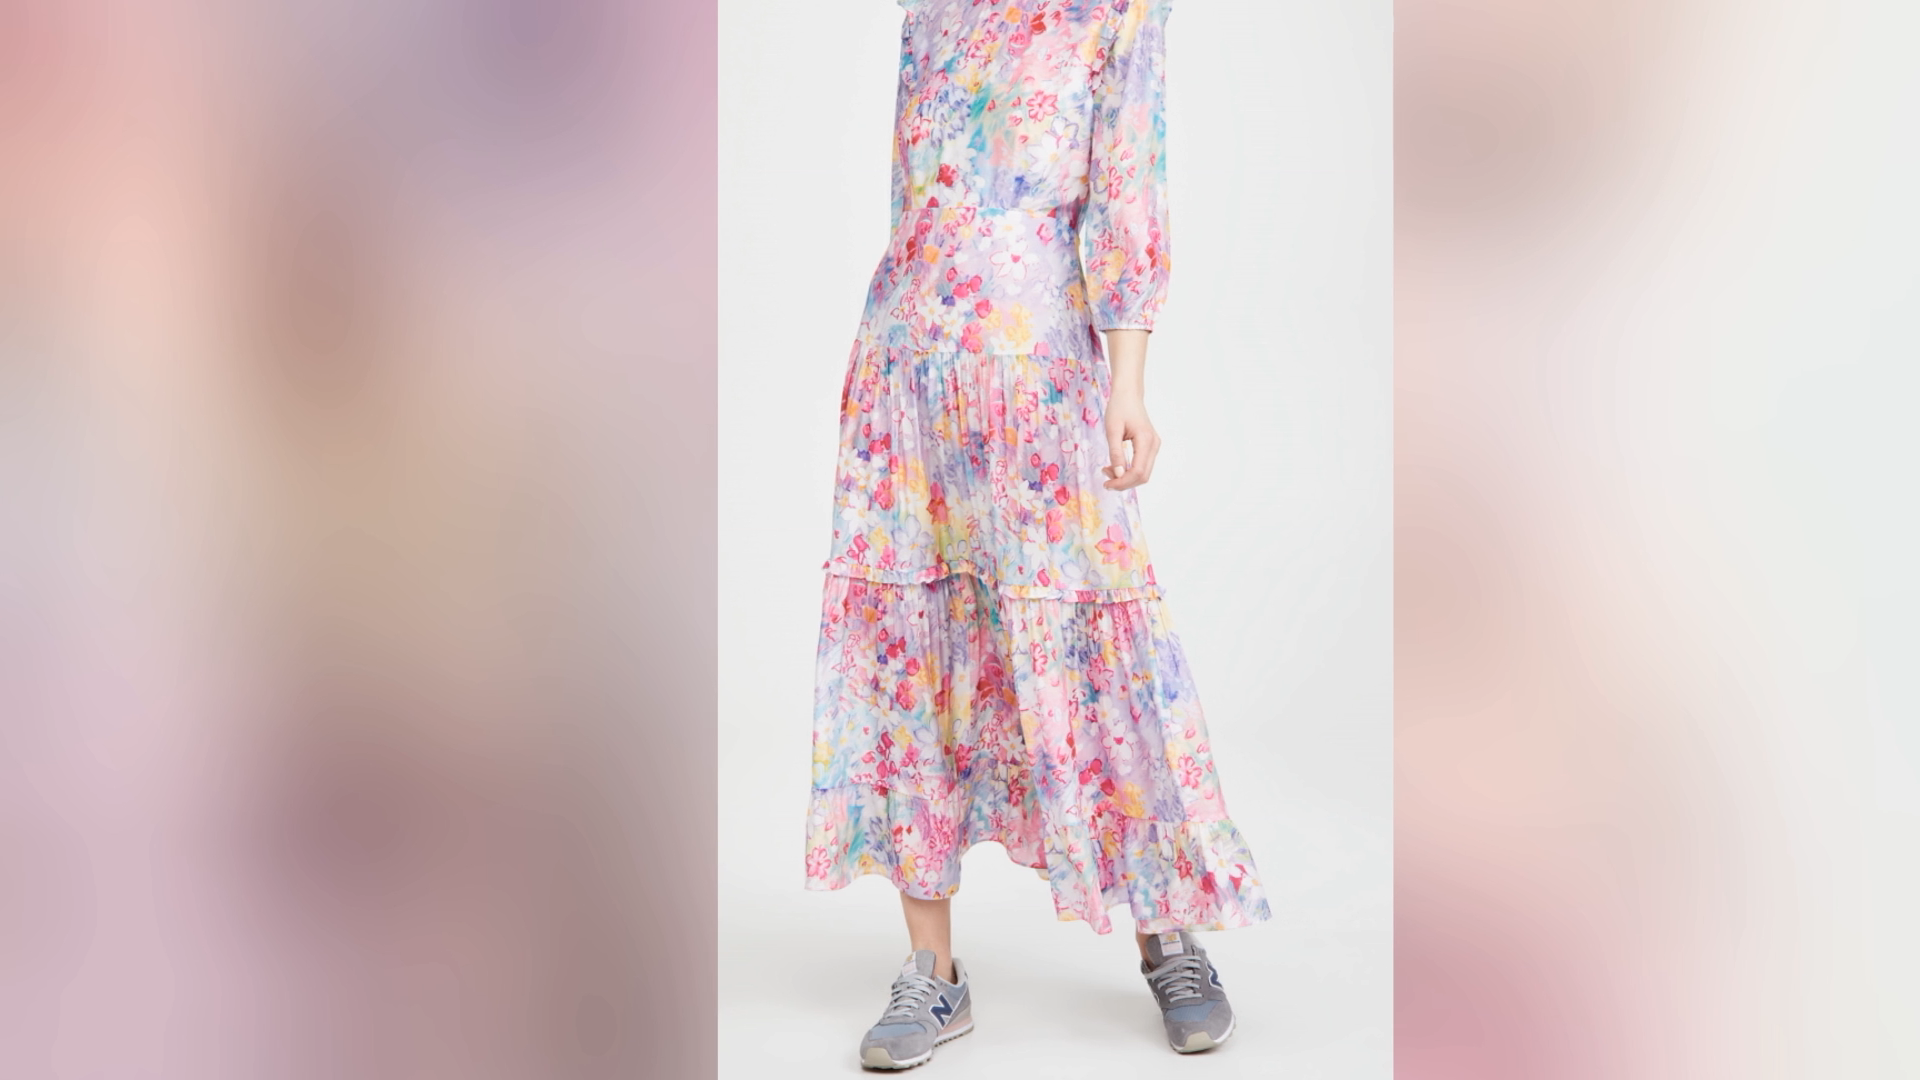 OEM 2021 stylish new arrival spring long sleeves layer plait floral print skirt Watercolor women casual long dress